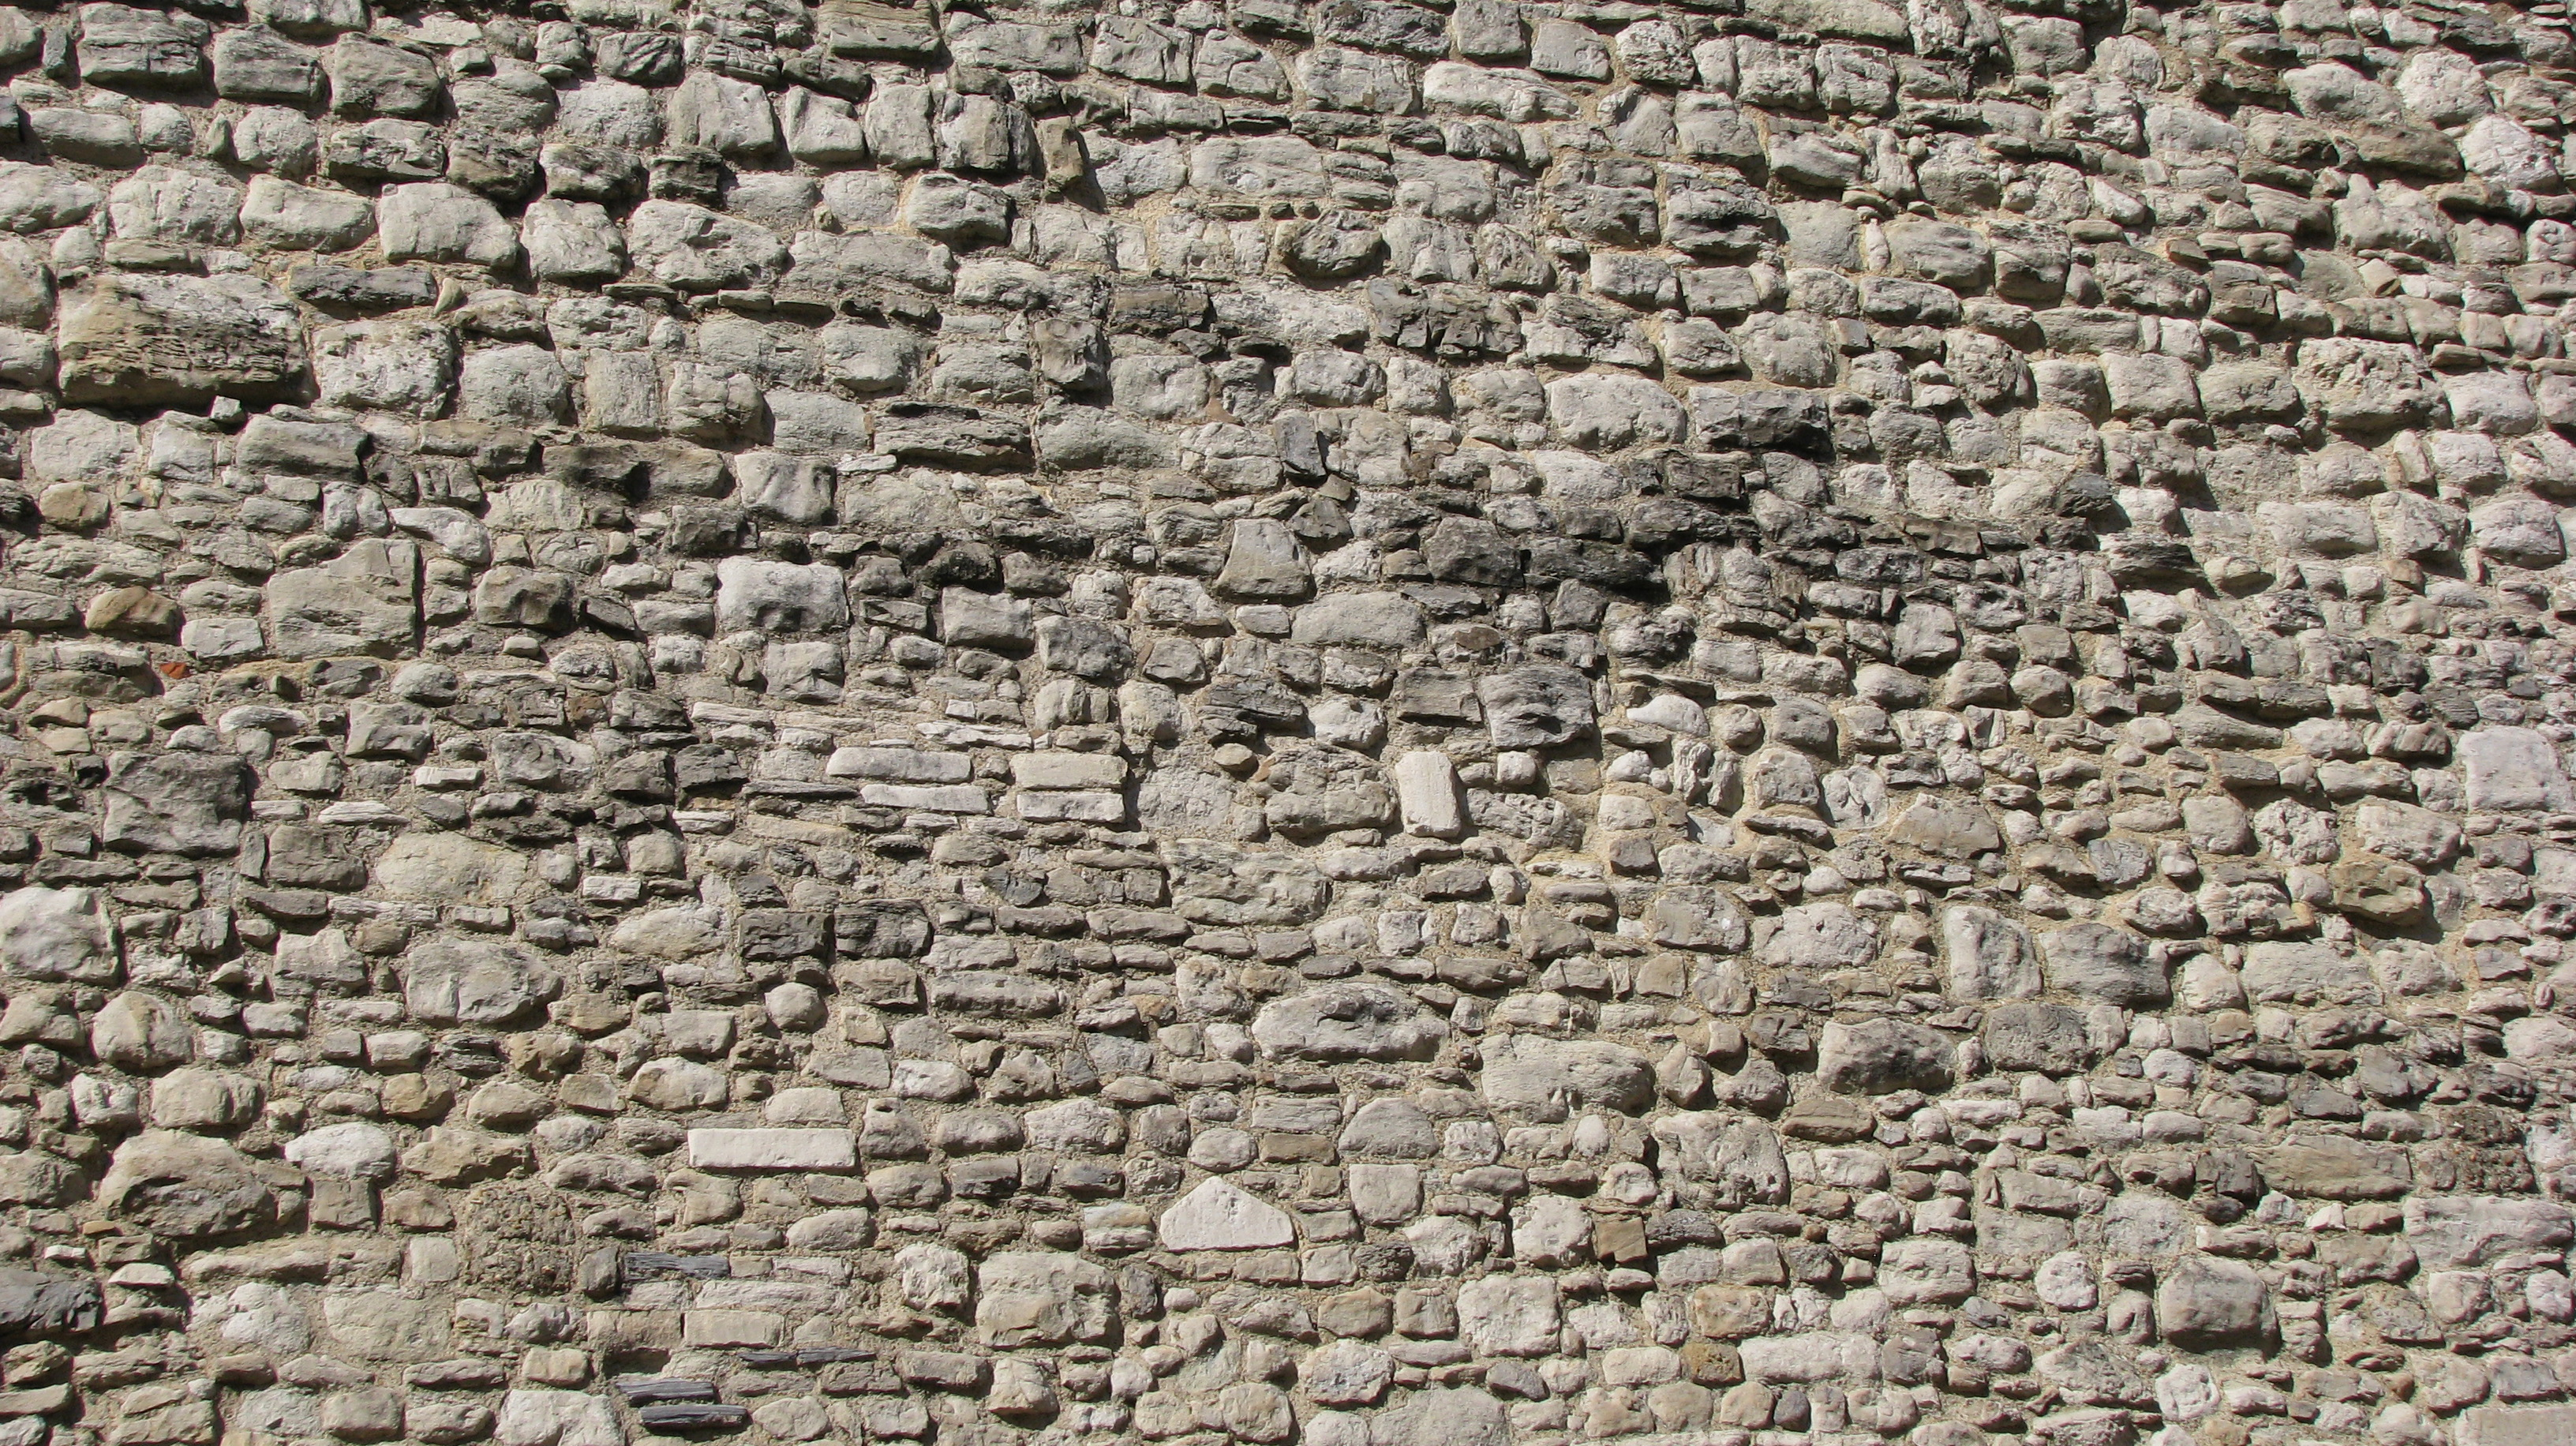 Stone Wall Texture by Tusserte on DeviantArt